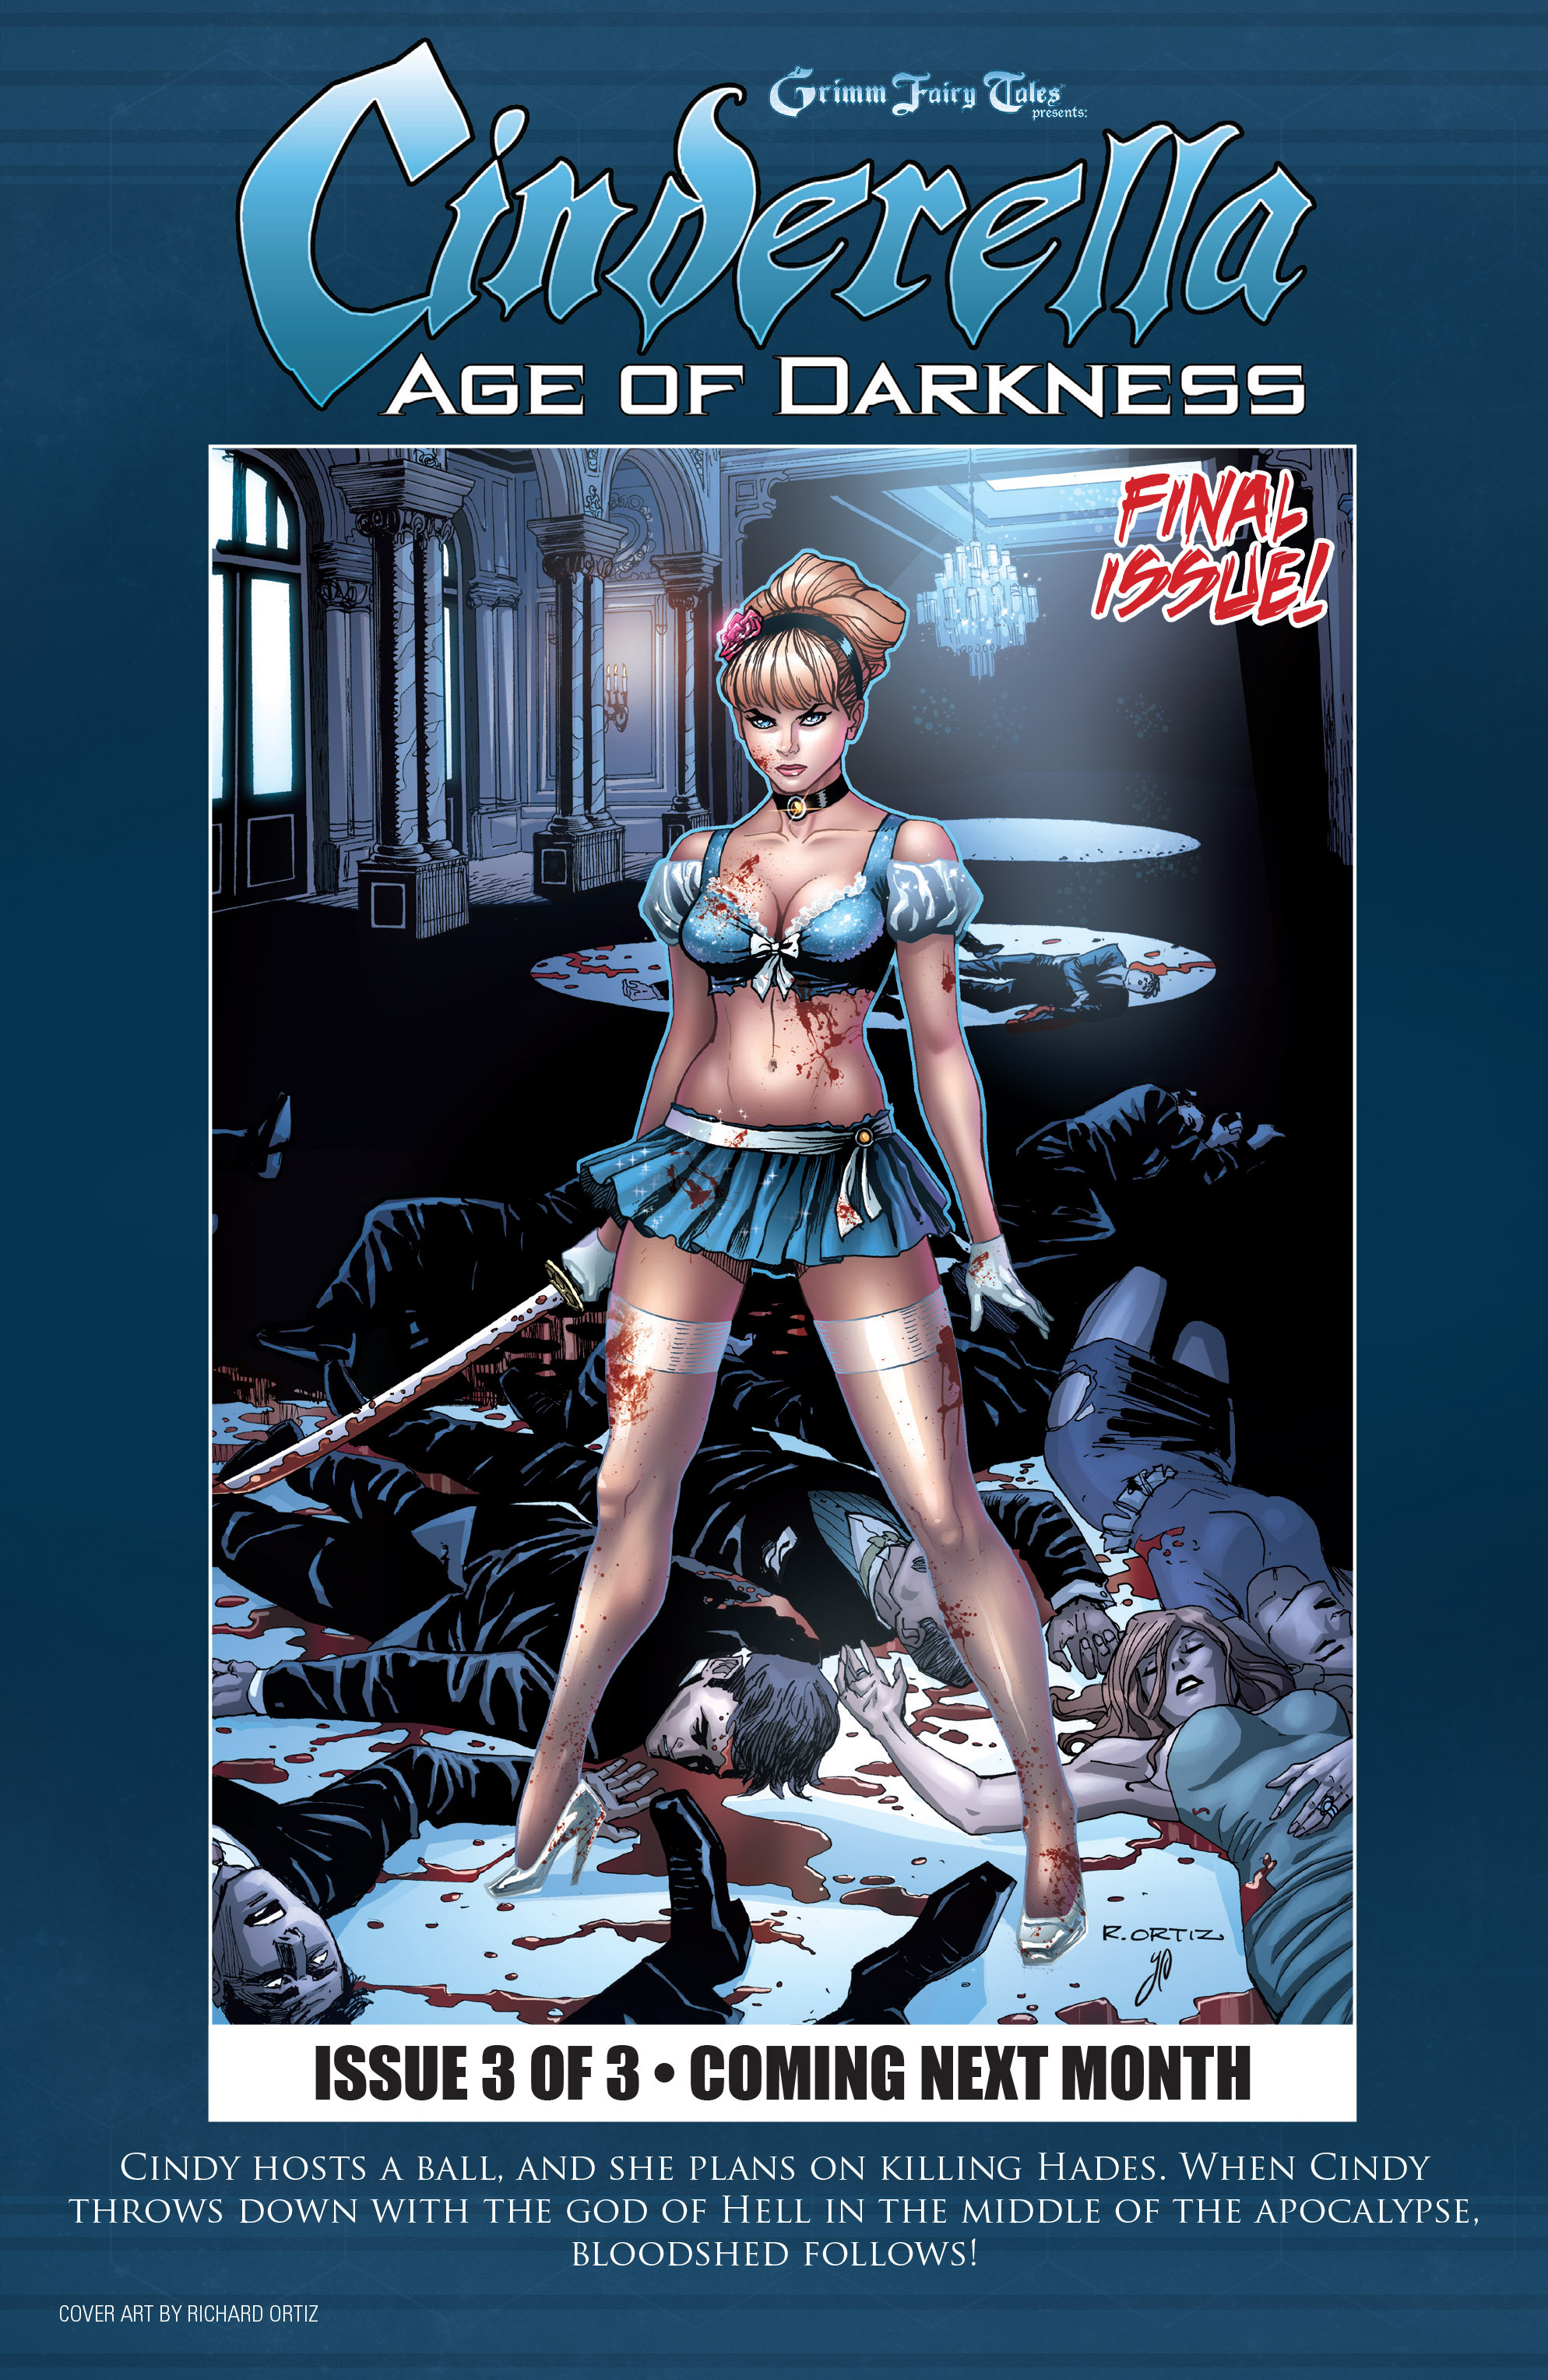 Read online Grimm Fairy Tales presents Cinderella: Age of Darkness comic -  Issue #2 - 25